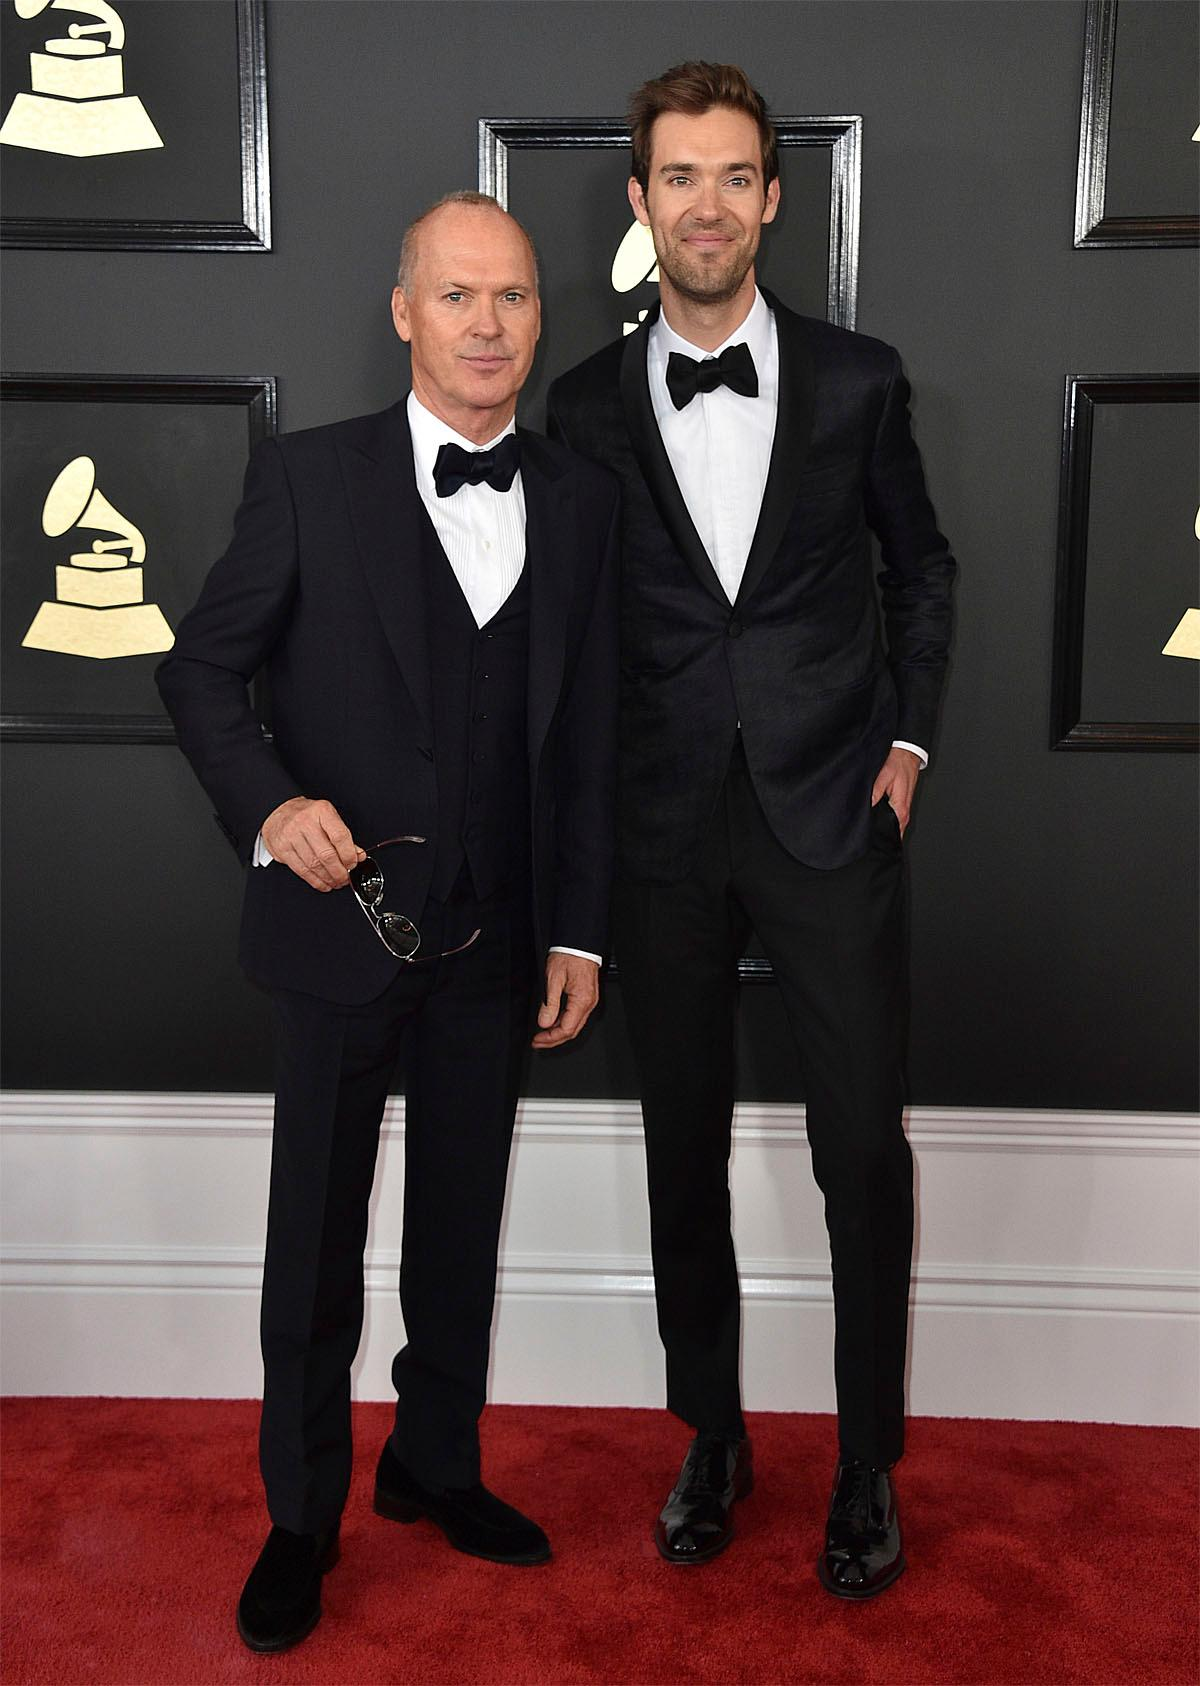 Michael Keaton, from left, and Sean Douglas arrive at the 59th annual Grammy Awards at the Staples Center on Sunday, Feb. 12, 2017, in Los Angeles. (Photo by Jordan Strauss/Invision/AP)